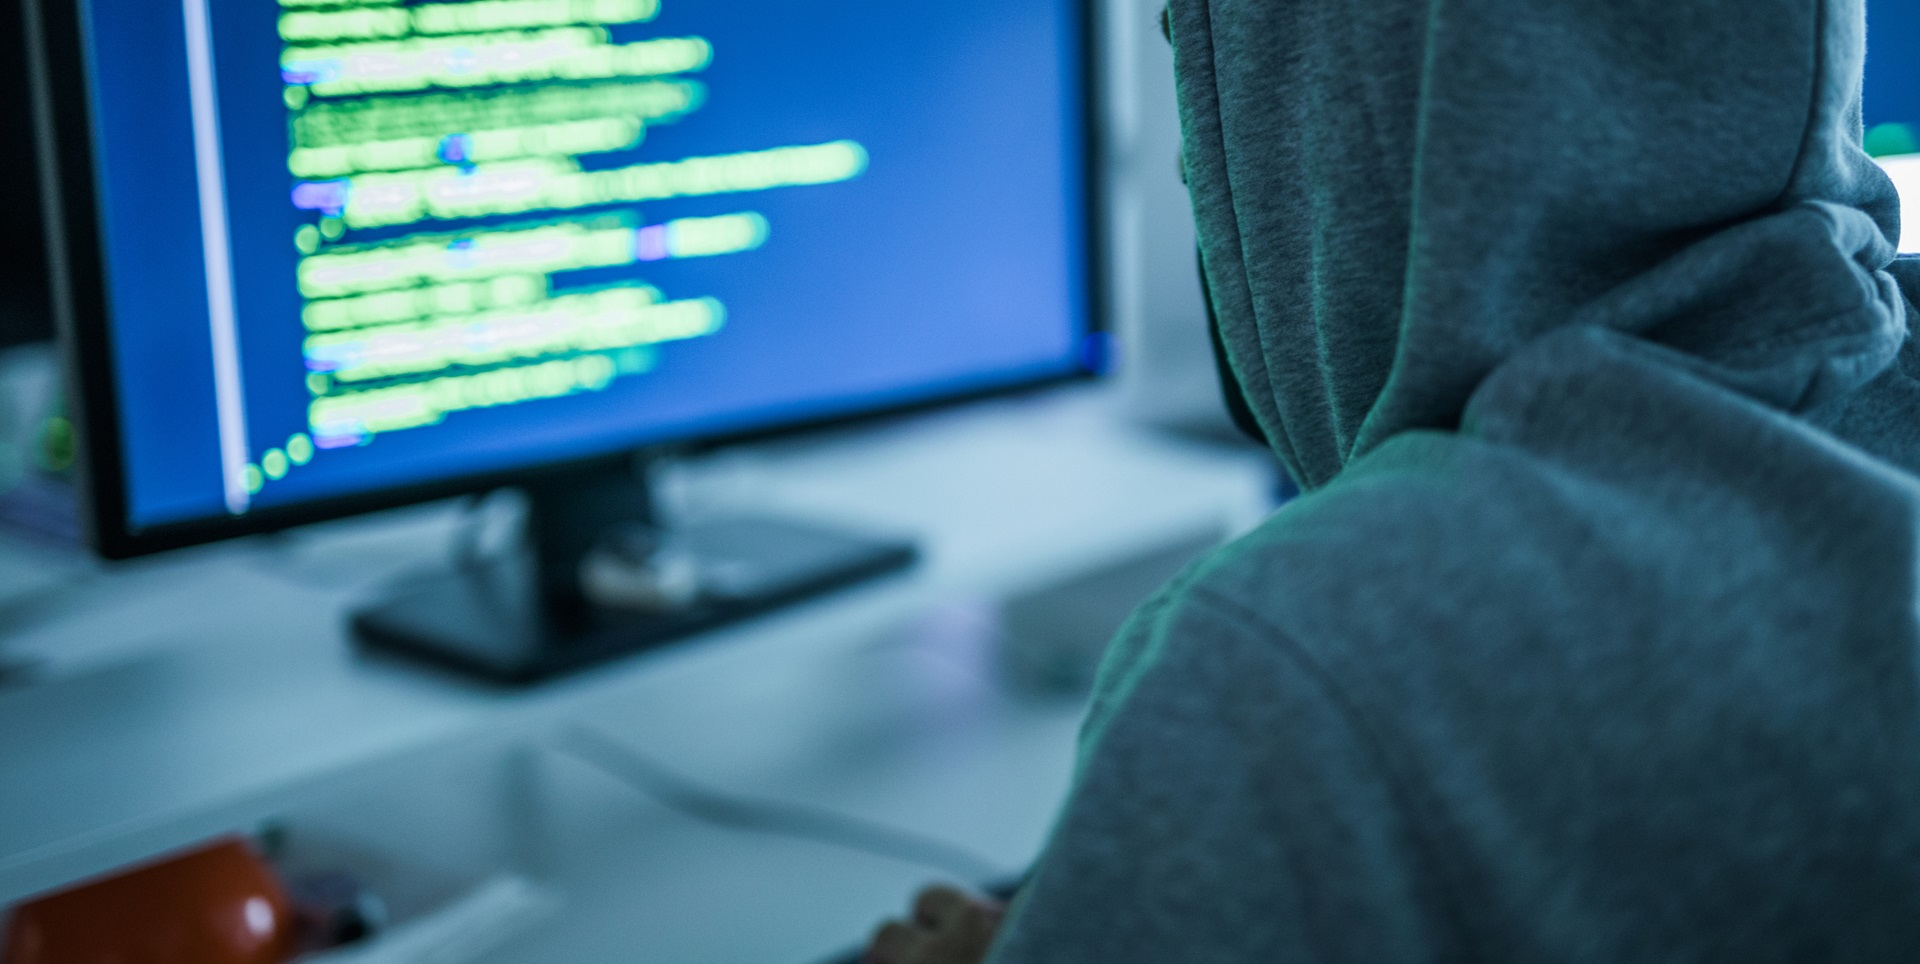 A computer hacker sat in front of a screen